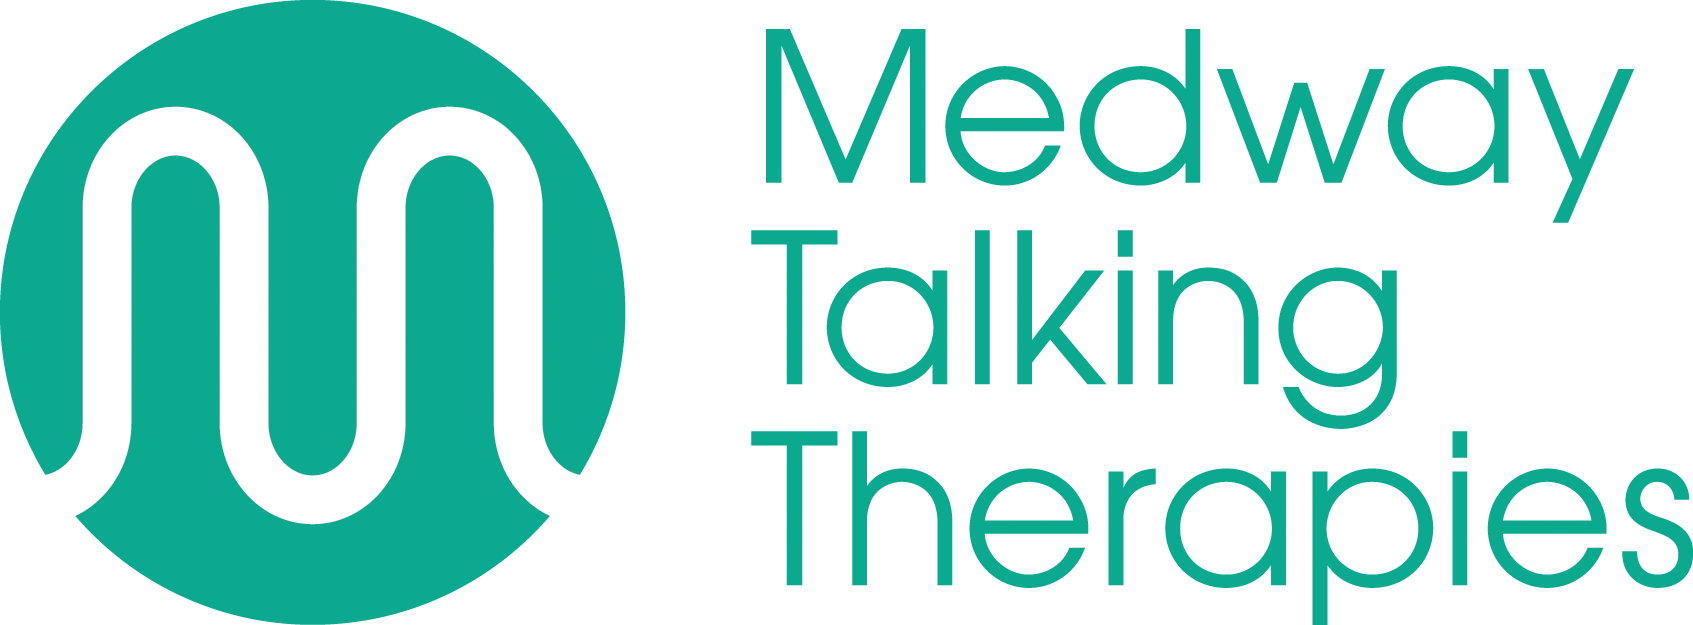 Medway Talking Therapies